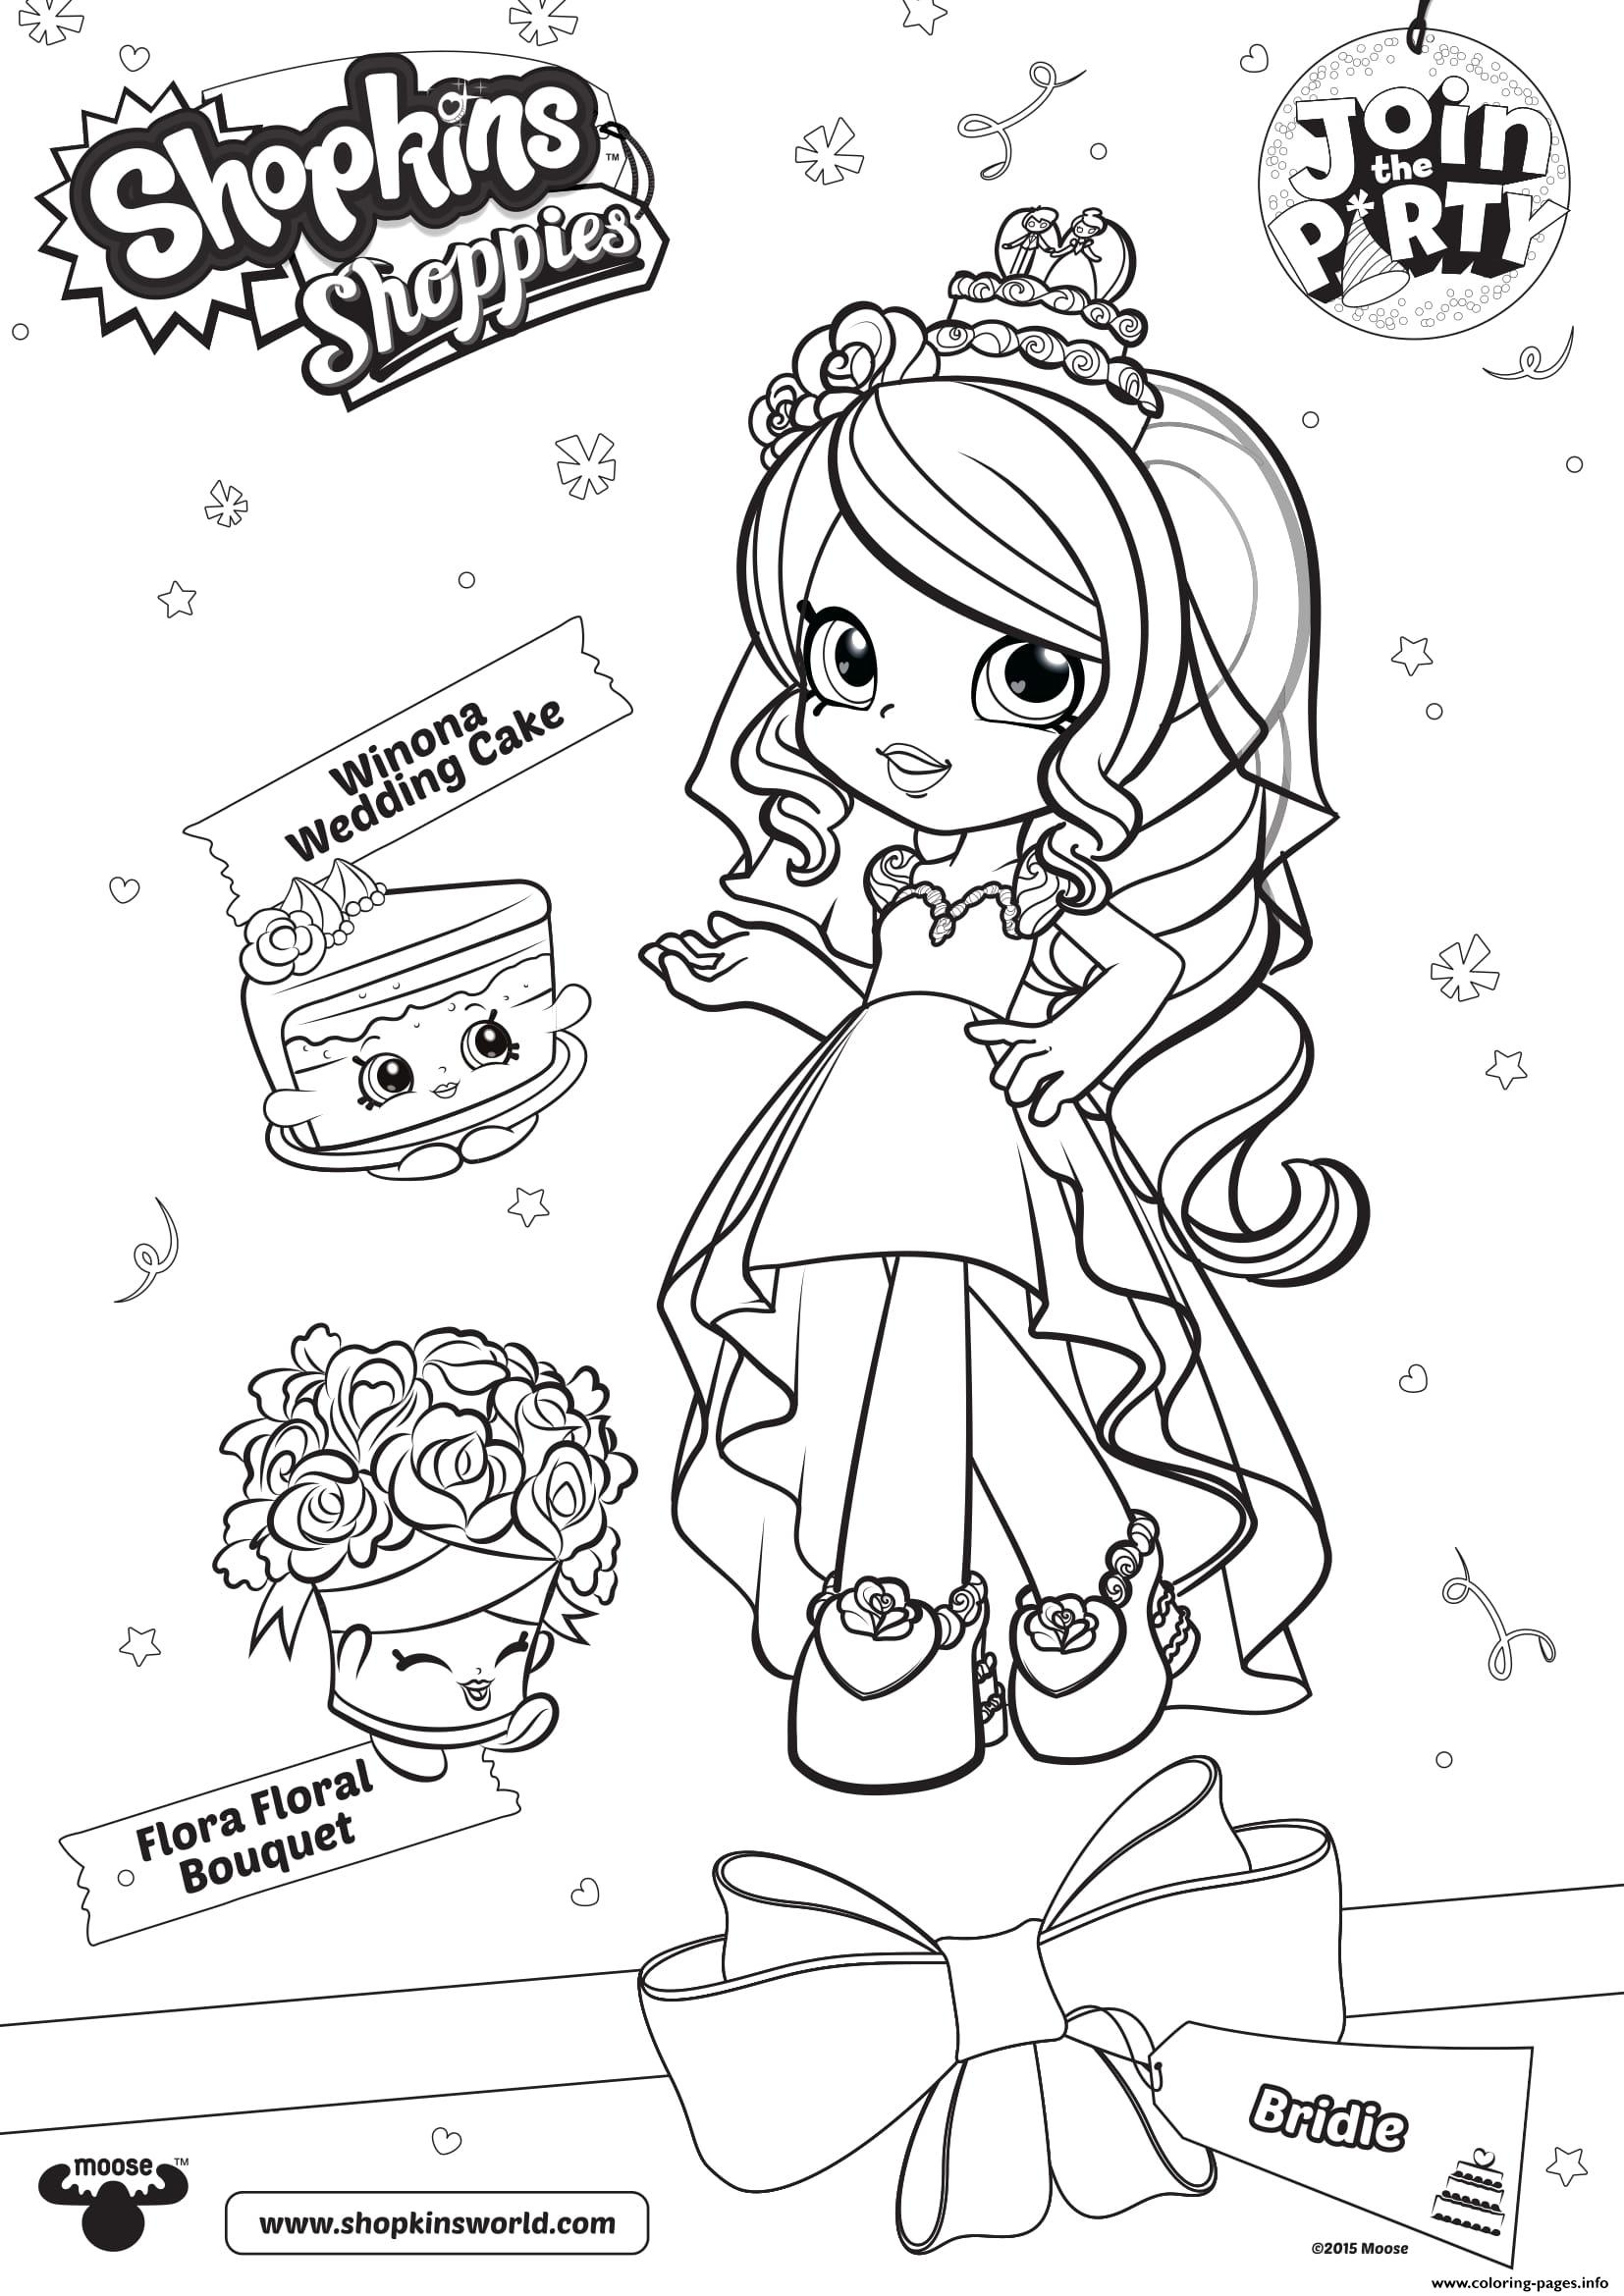 Shopkins Doll Bridie 1 coloring pages